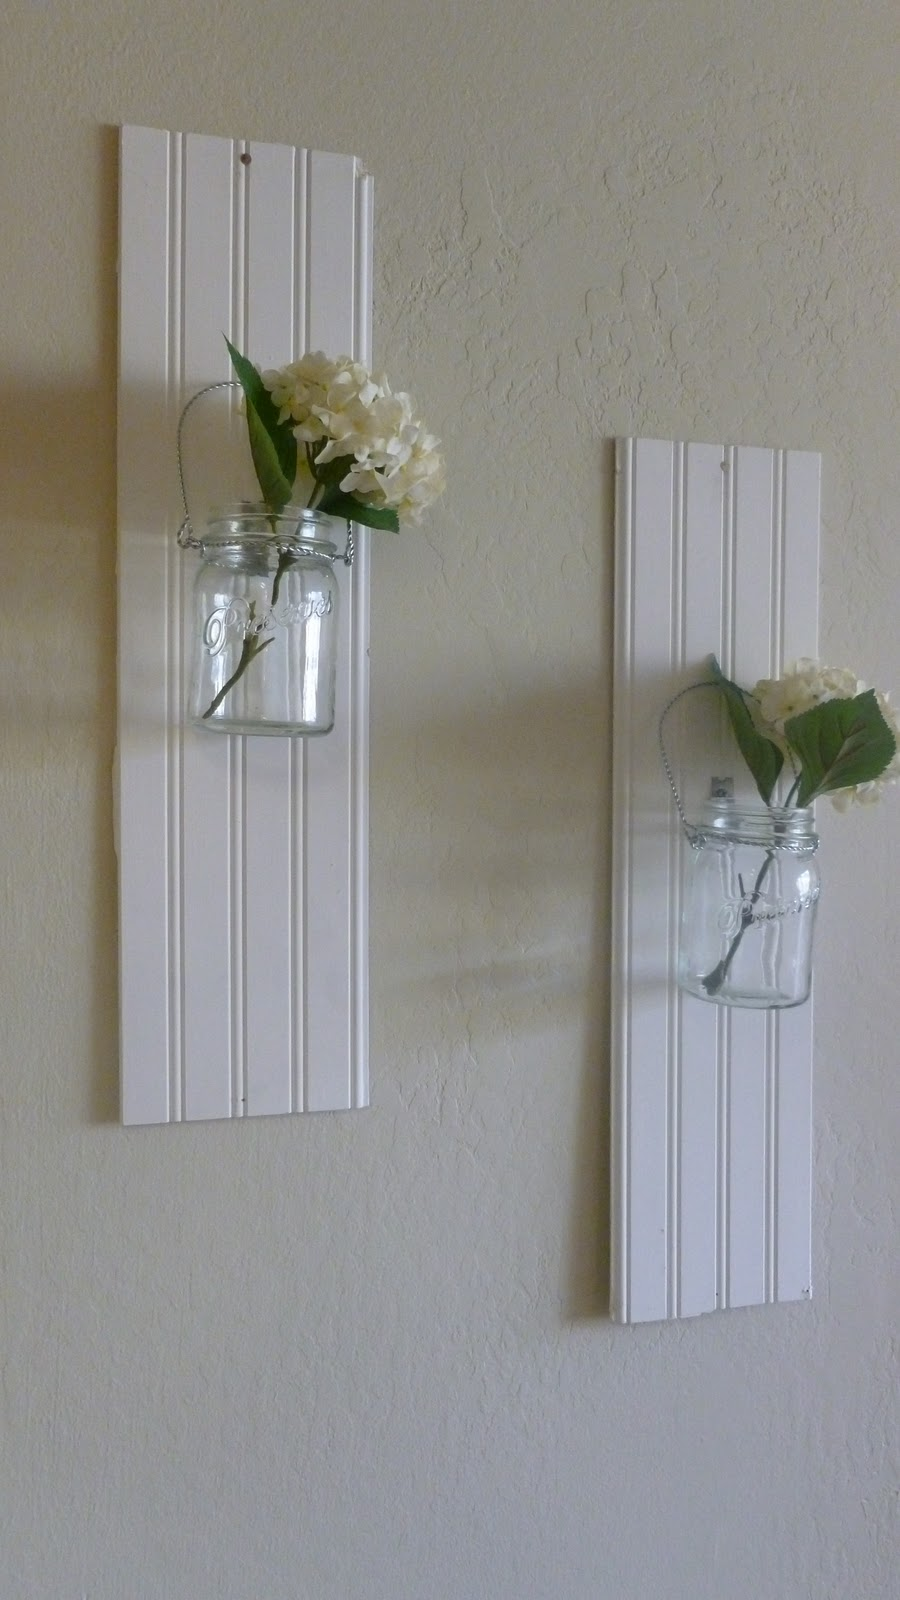 Wall Decor With Mason Jars : Burlap buttons mason jar wall decor